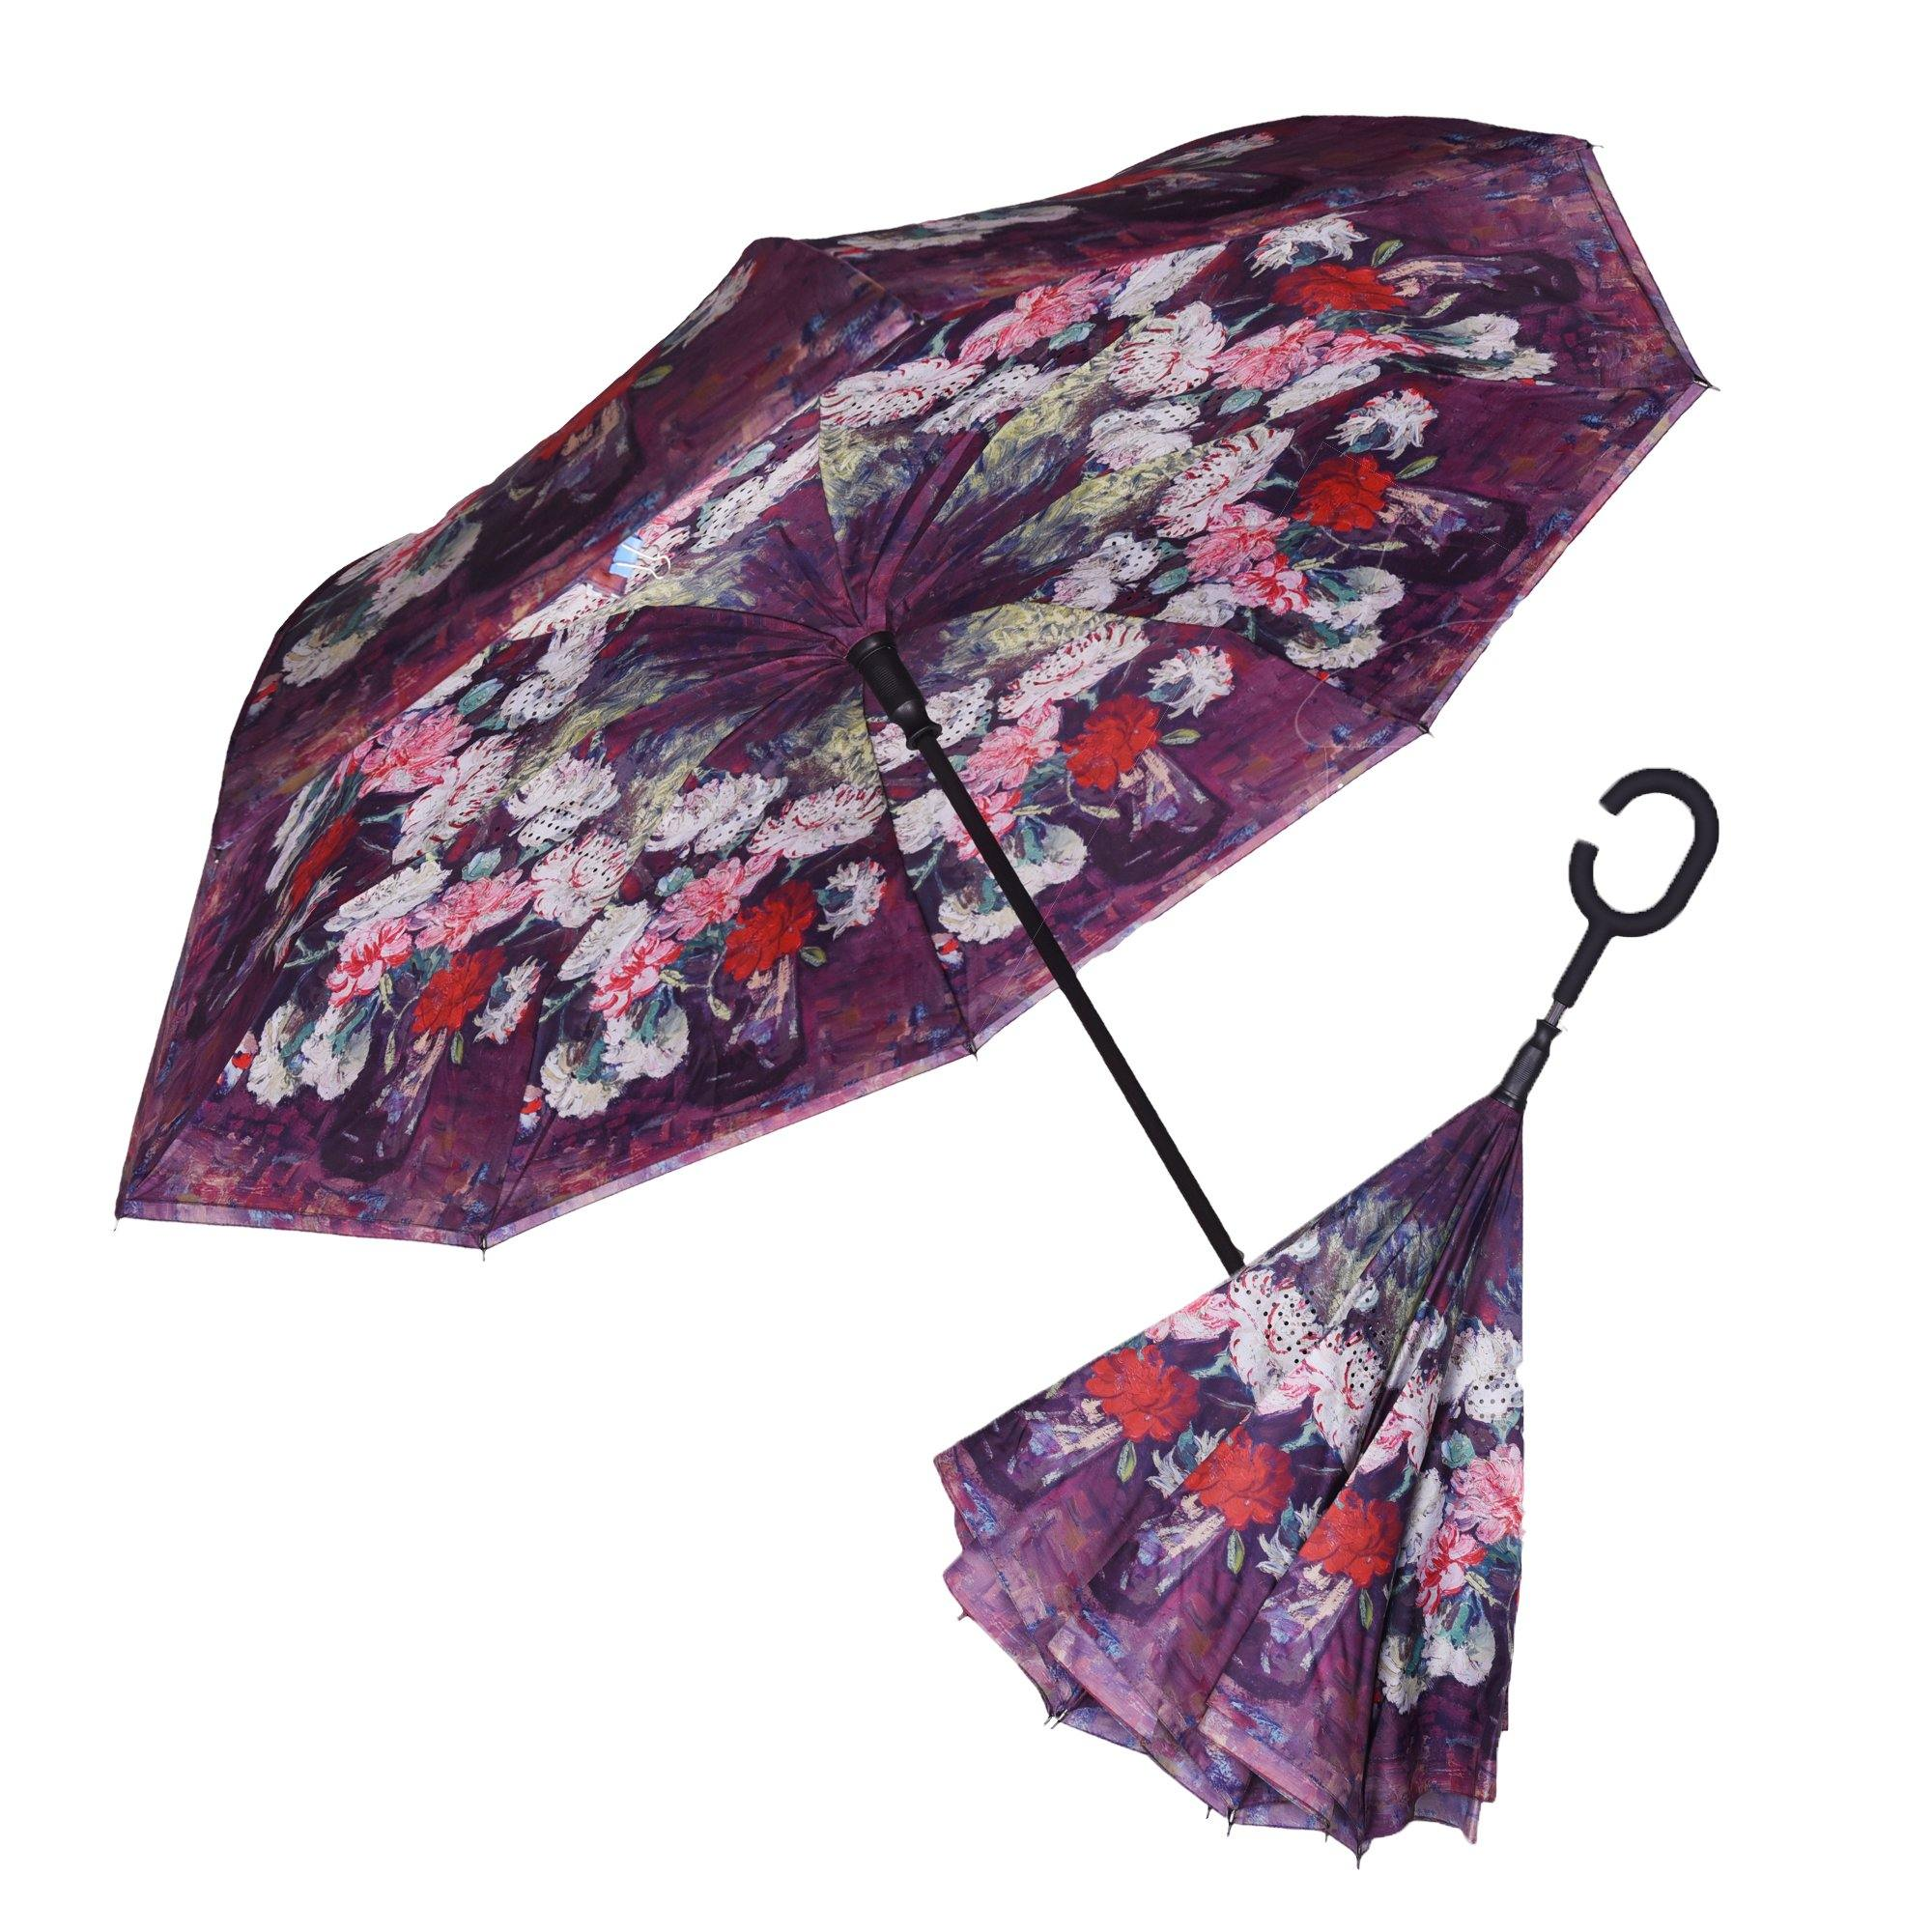 Image of a RainCaper van Gogh Carnations inverted umbrella shown both open and closed